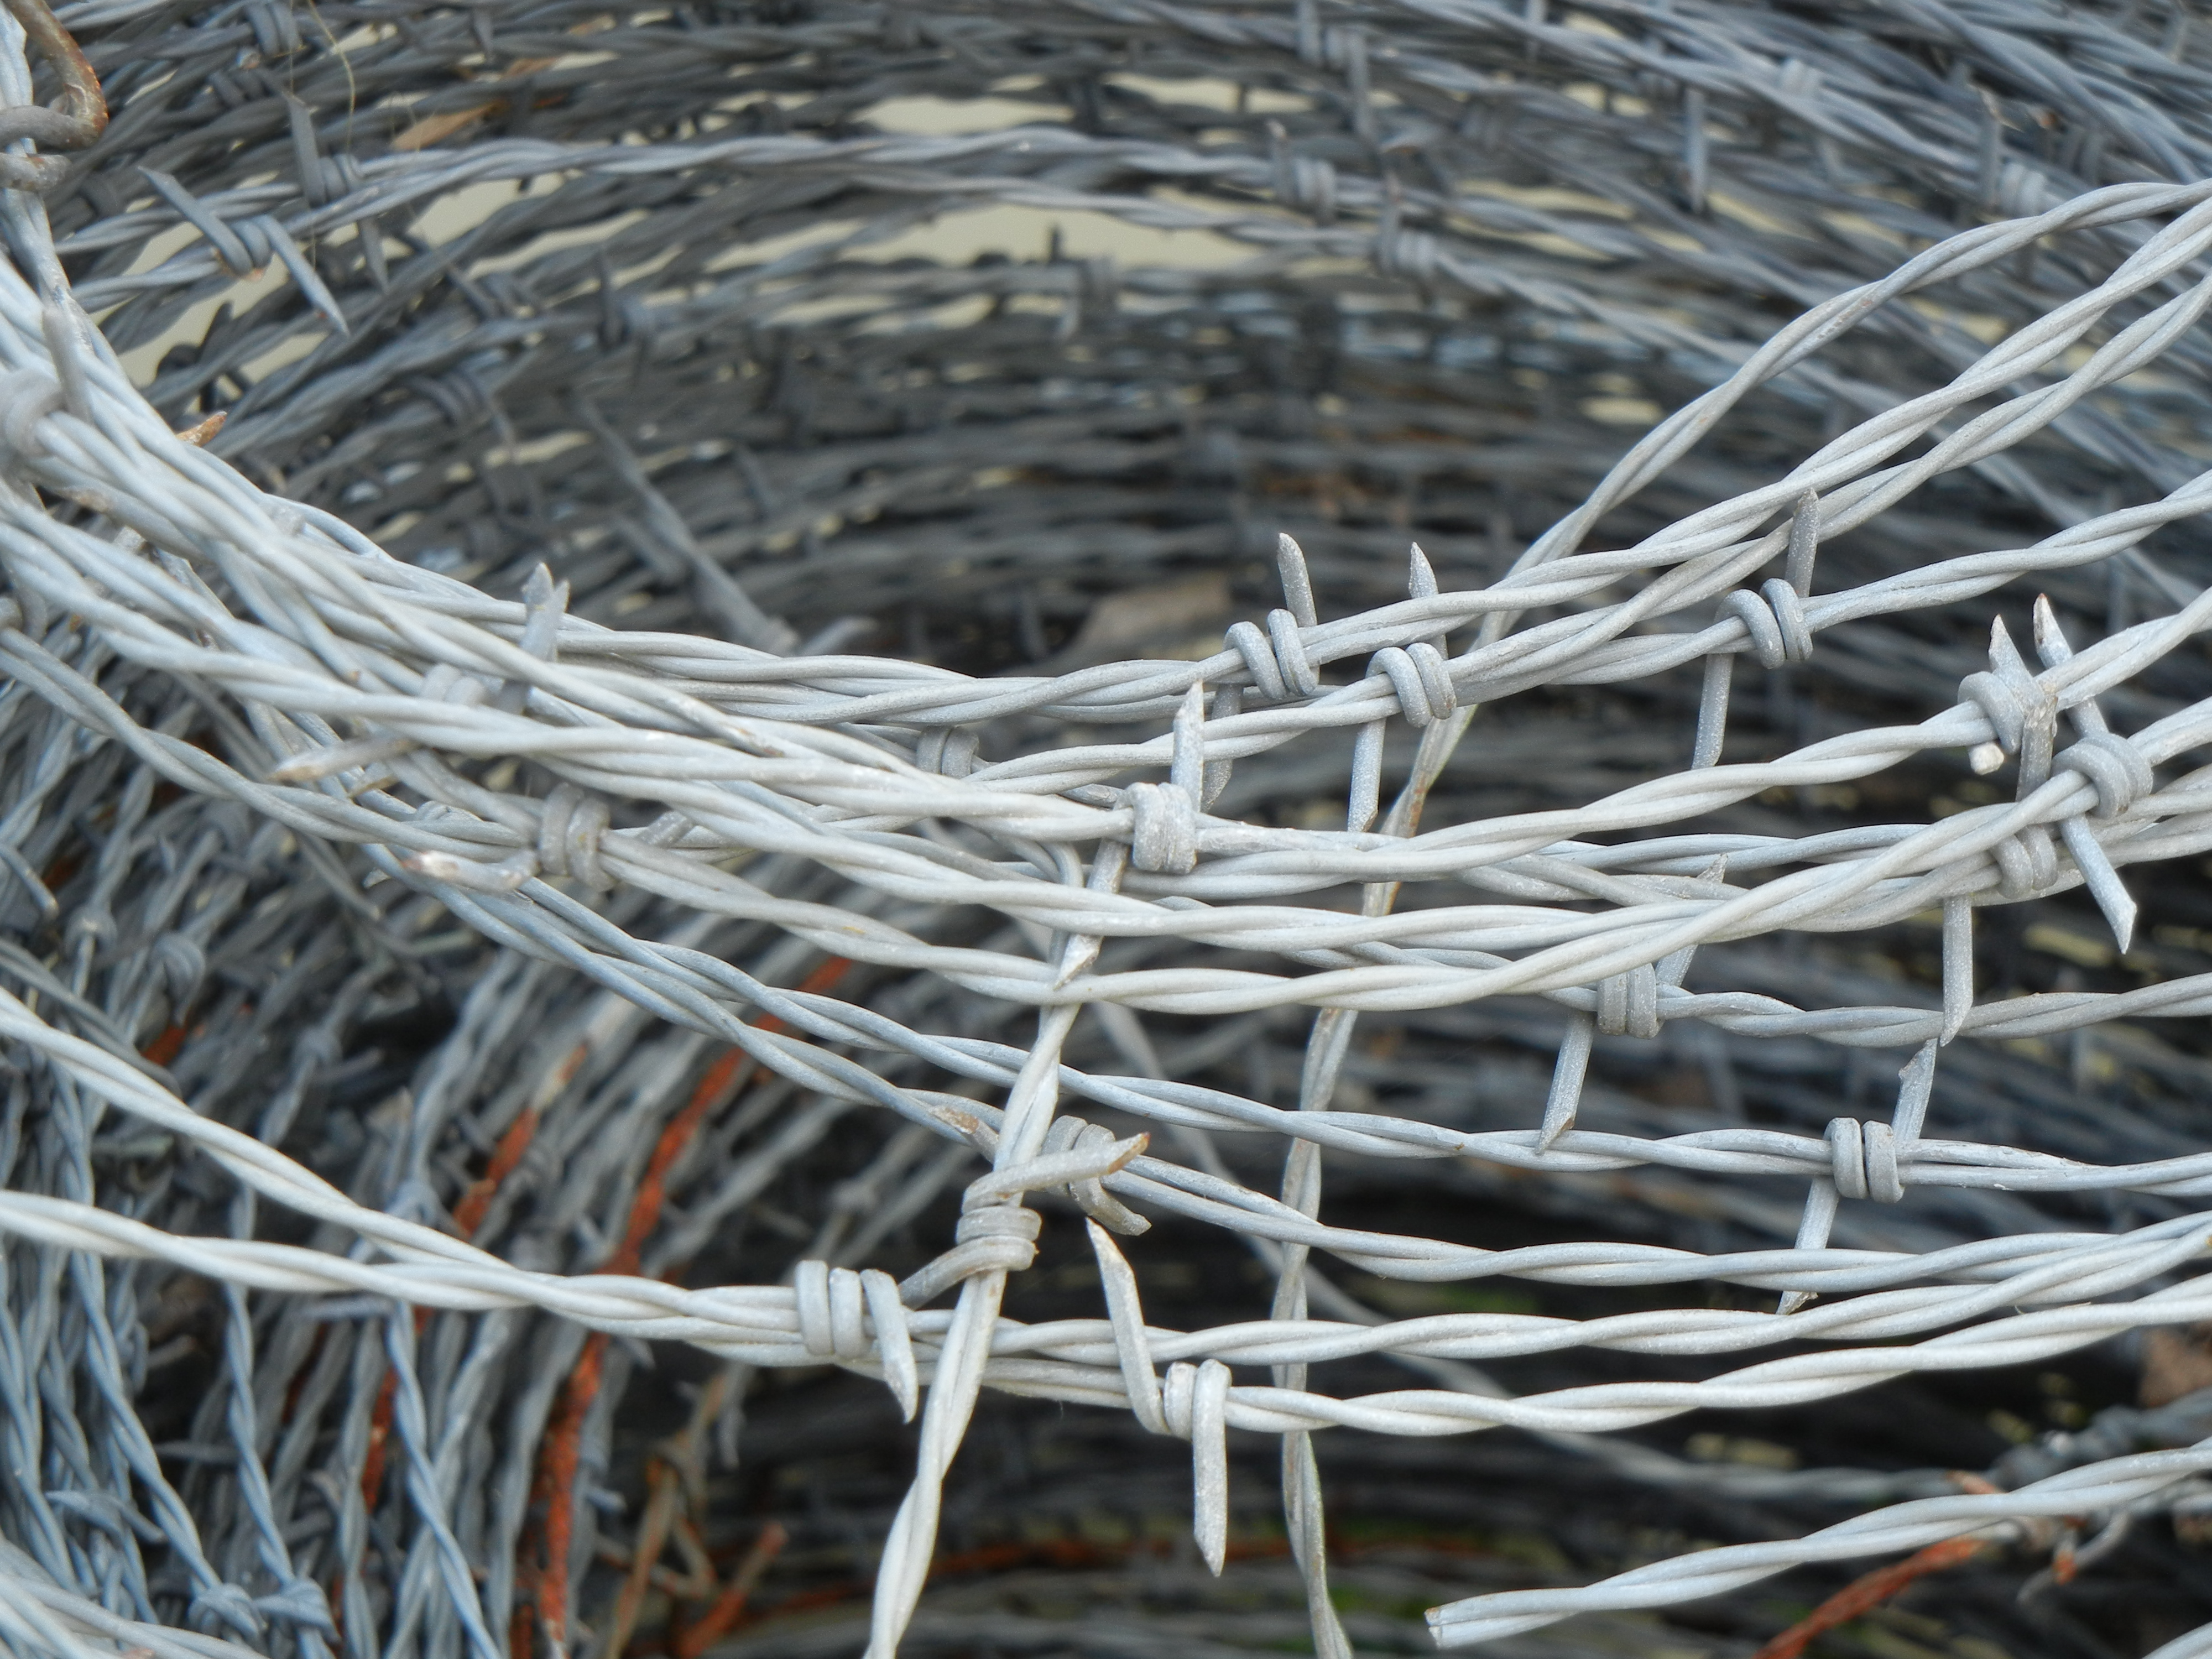 File:Barbed Wire Roll.jpg - Wikimedia Commons